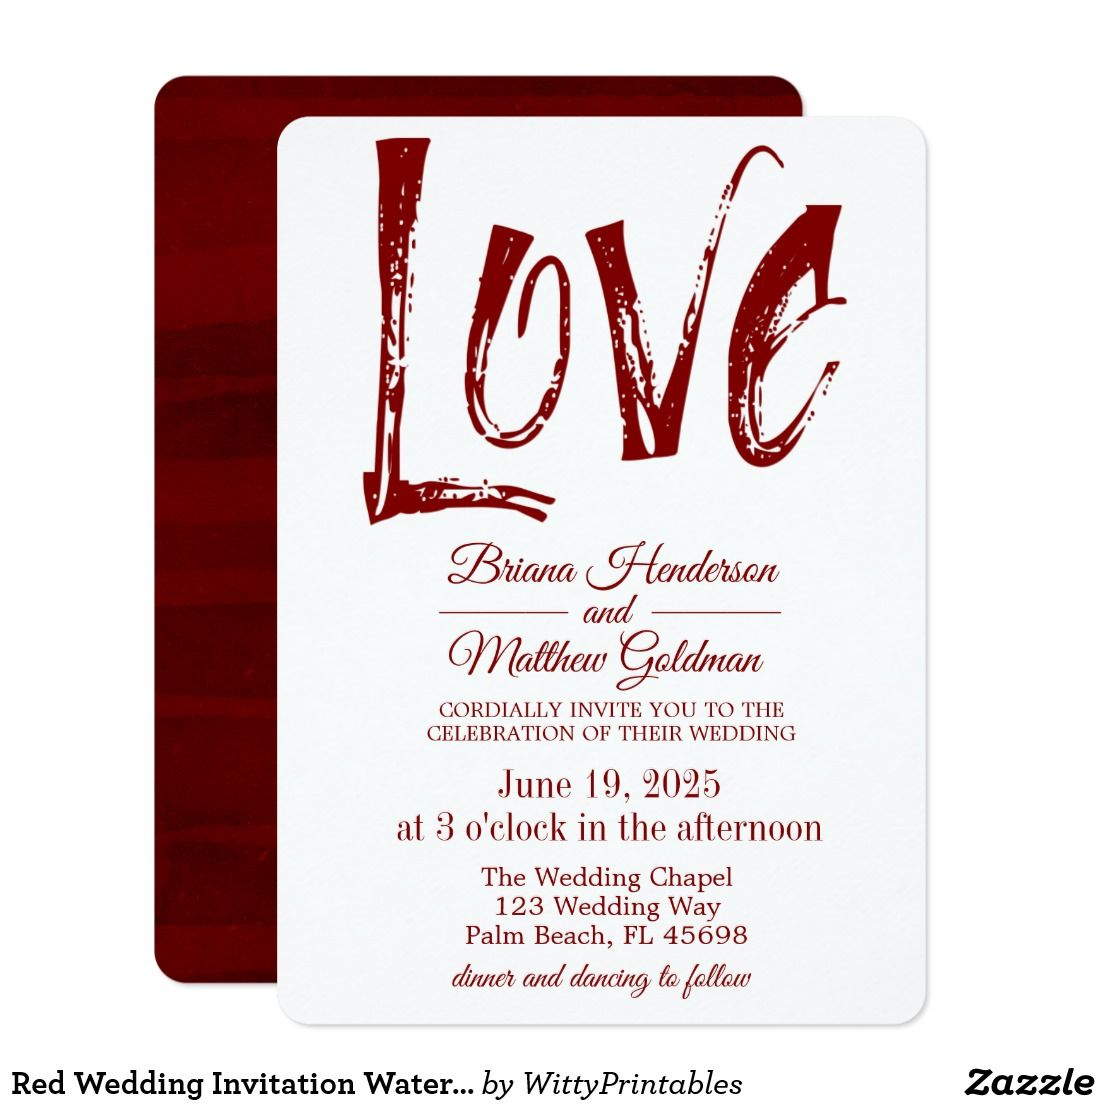 Red Wedding Invitation Watercolor Typography Love | Red wedding ...